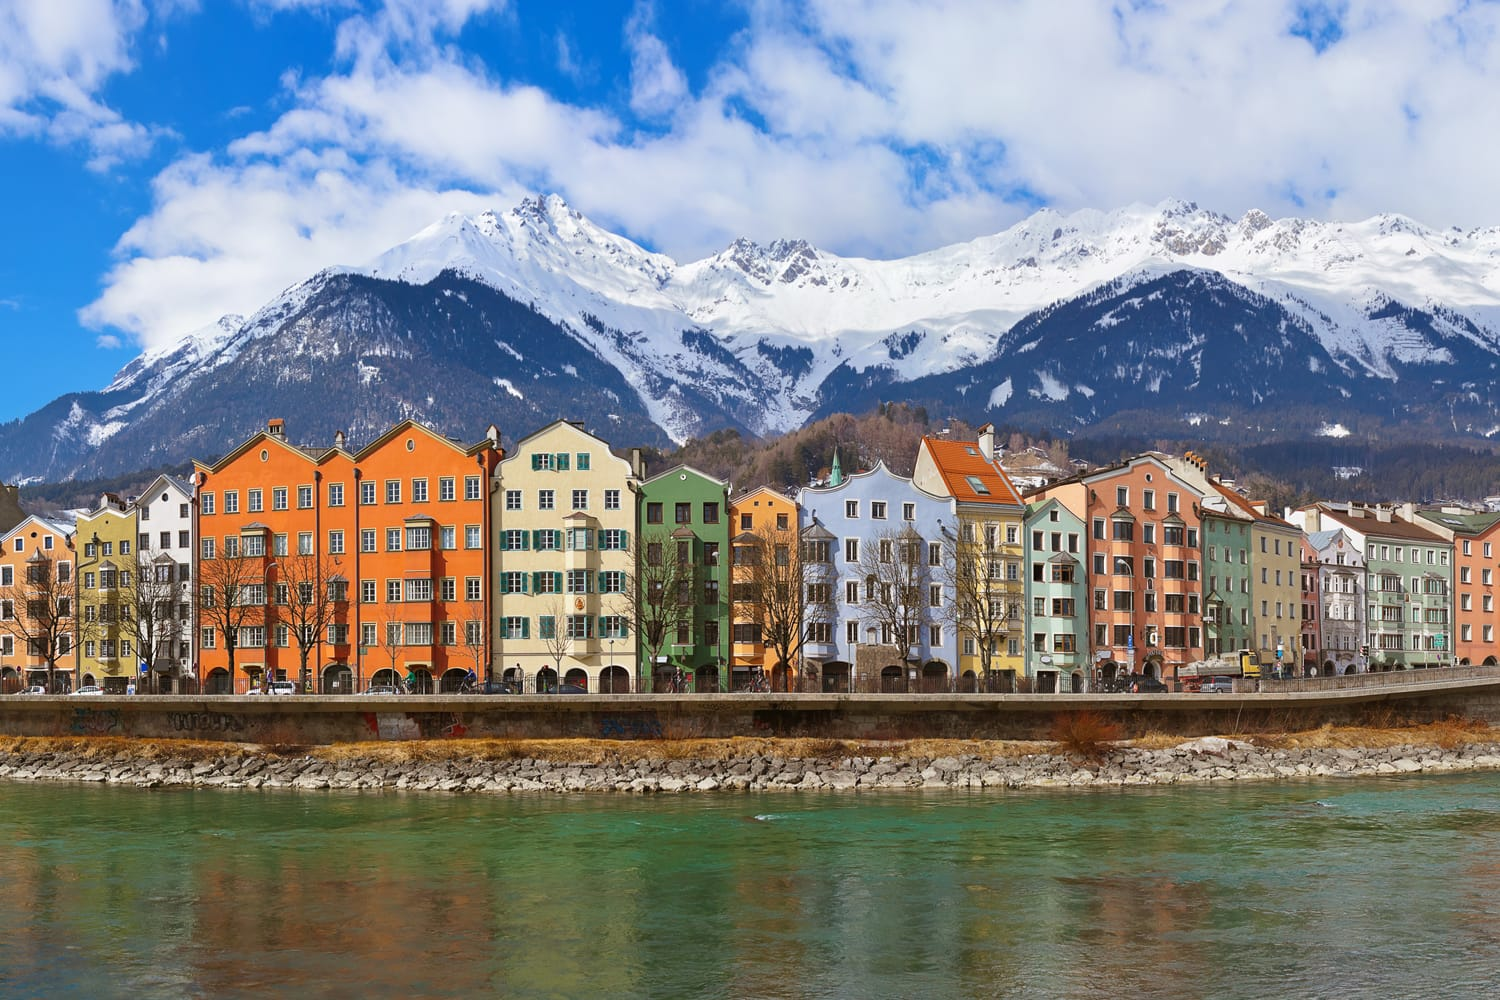 Innsbruck in Austria during winter